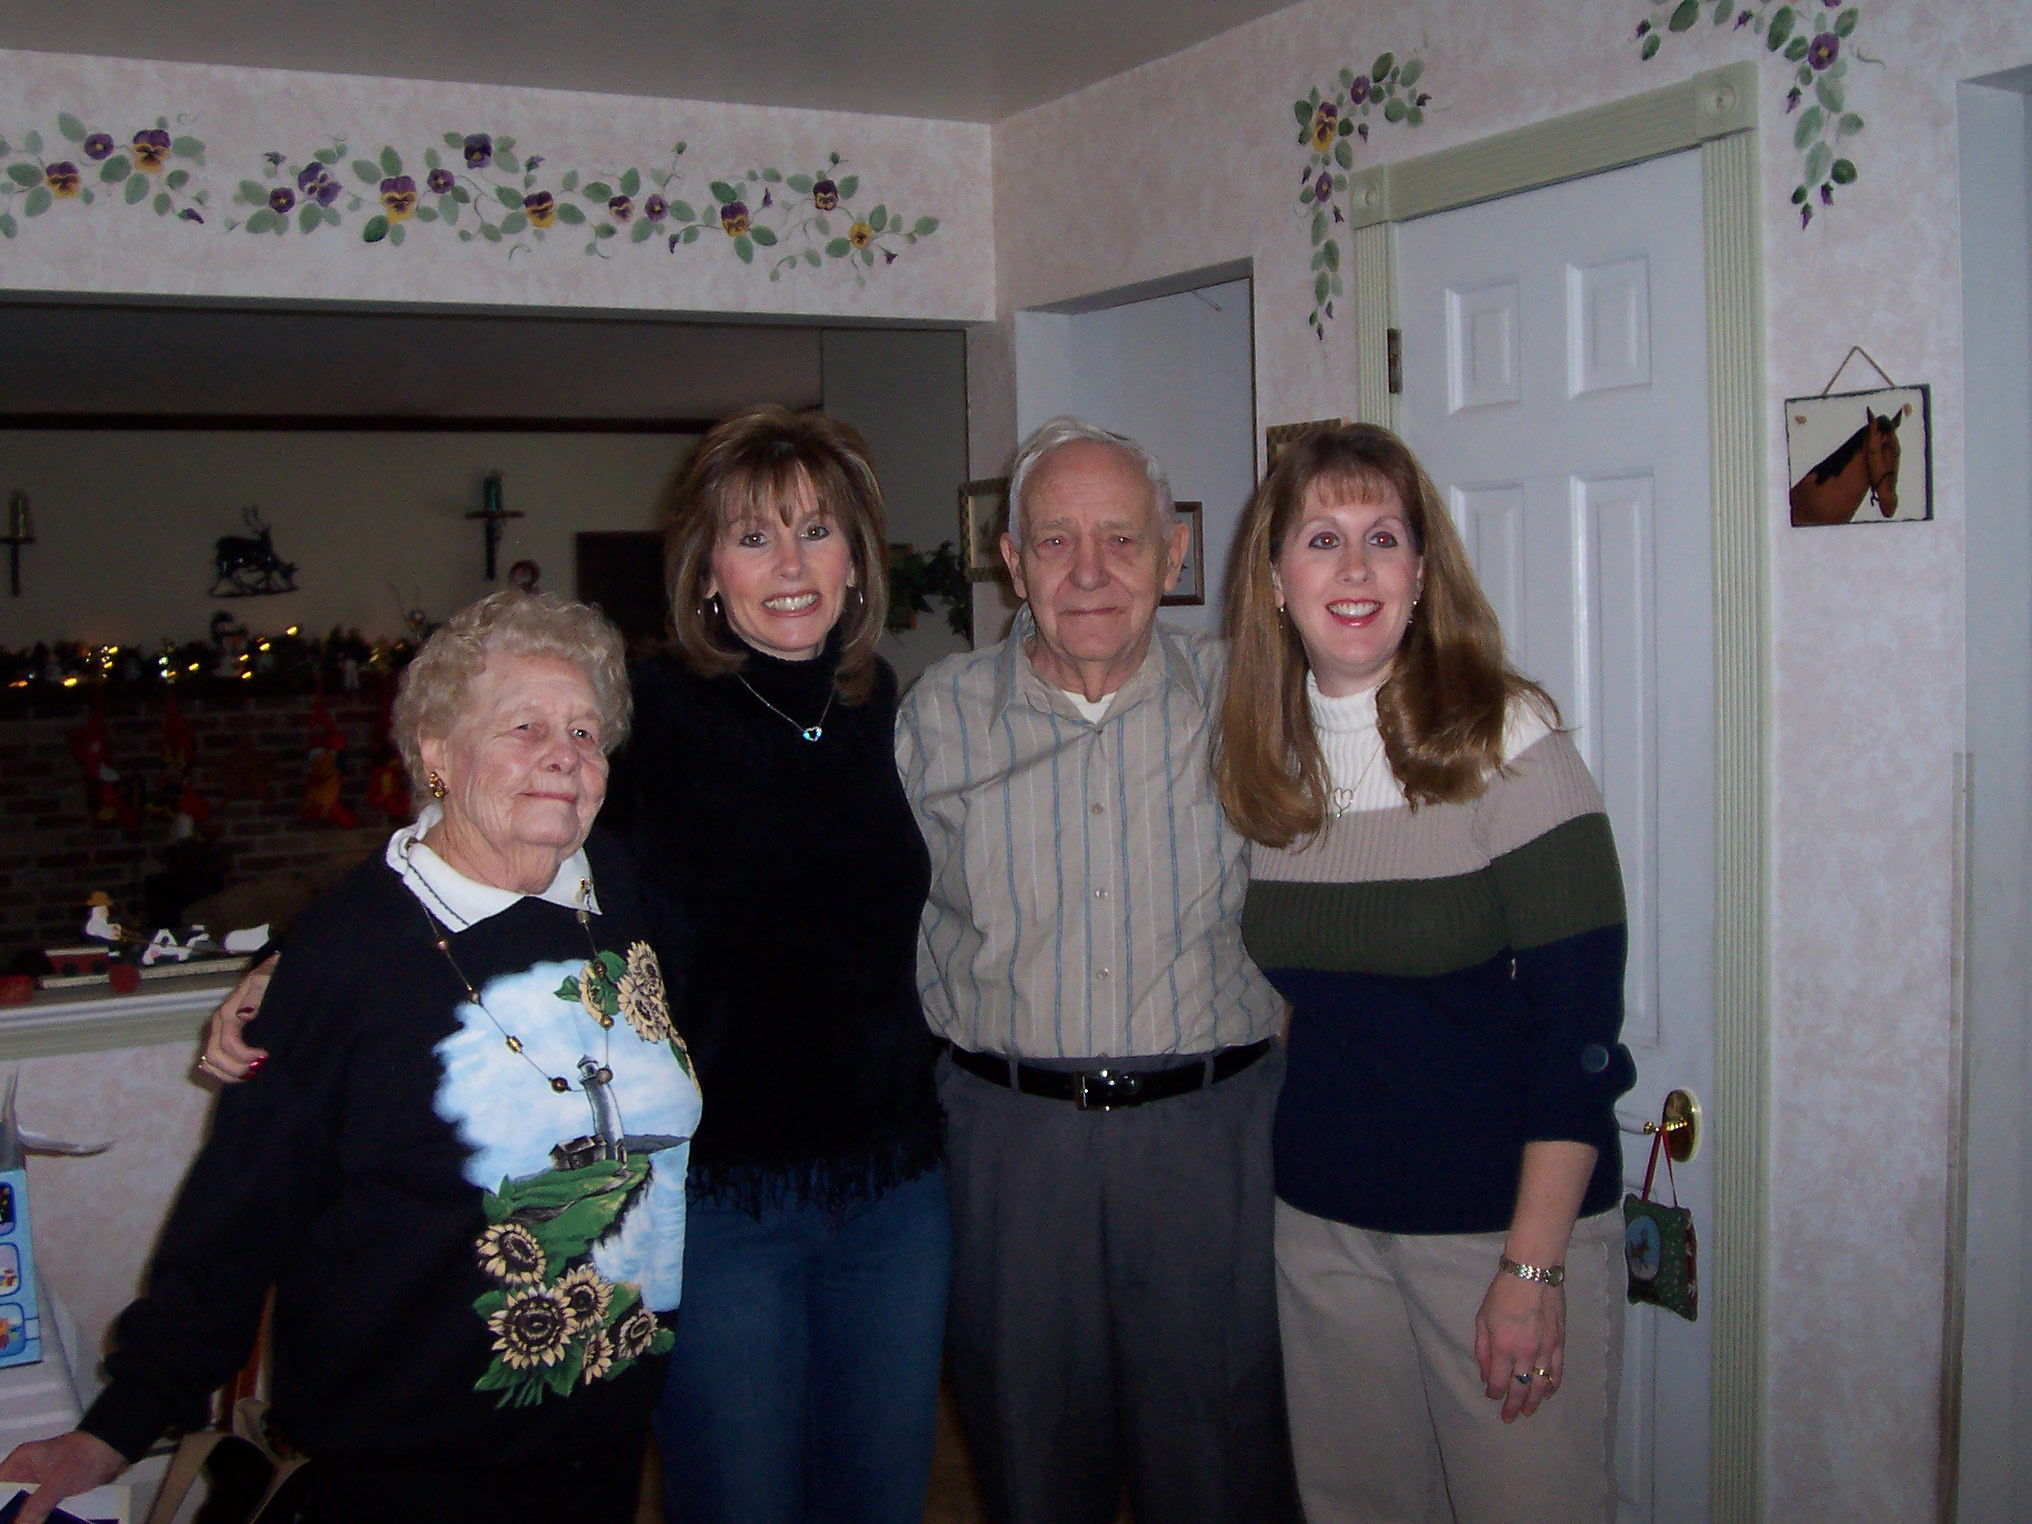 Virginia & Charles with Grandchildren Marilyn(left) and Lorie(right) Christmas 2003